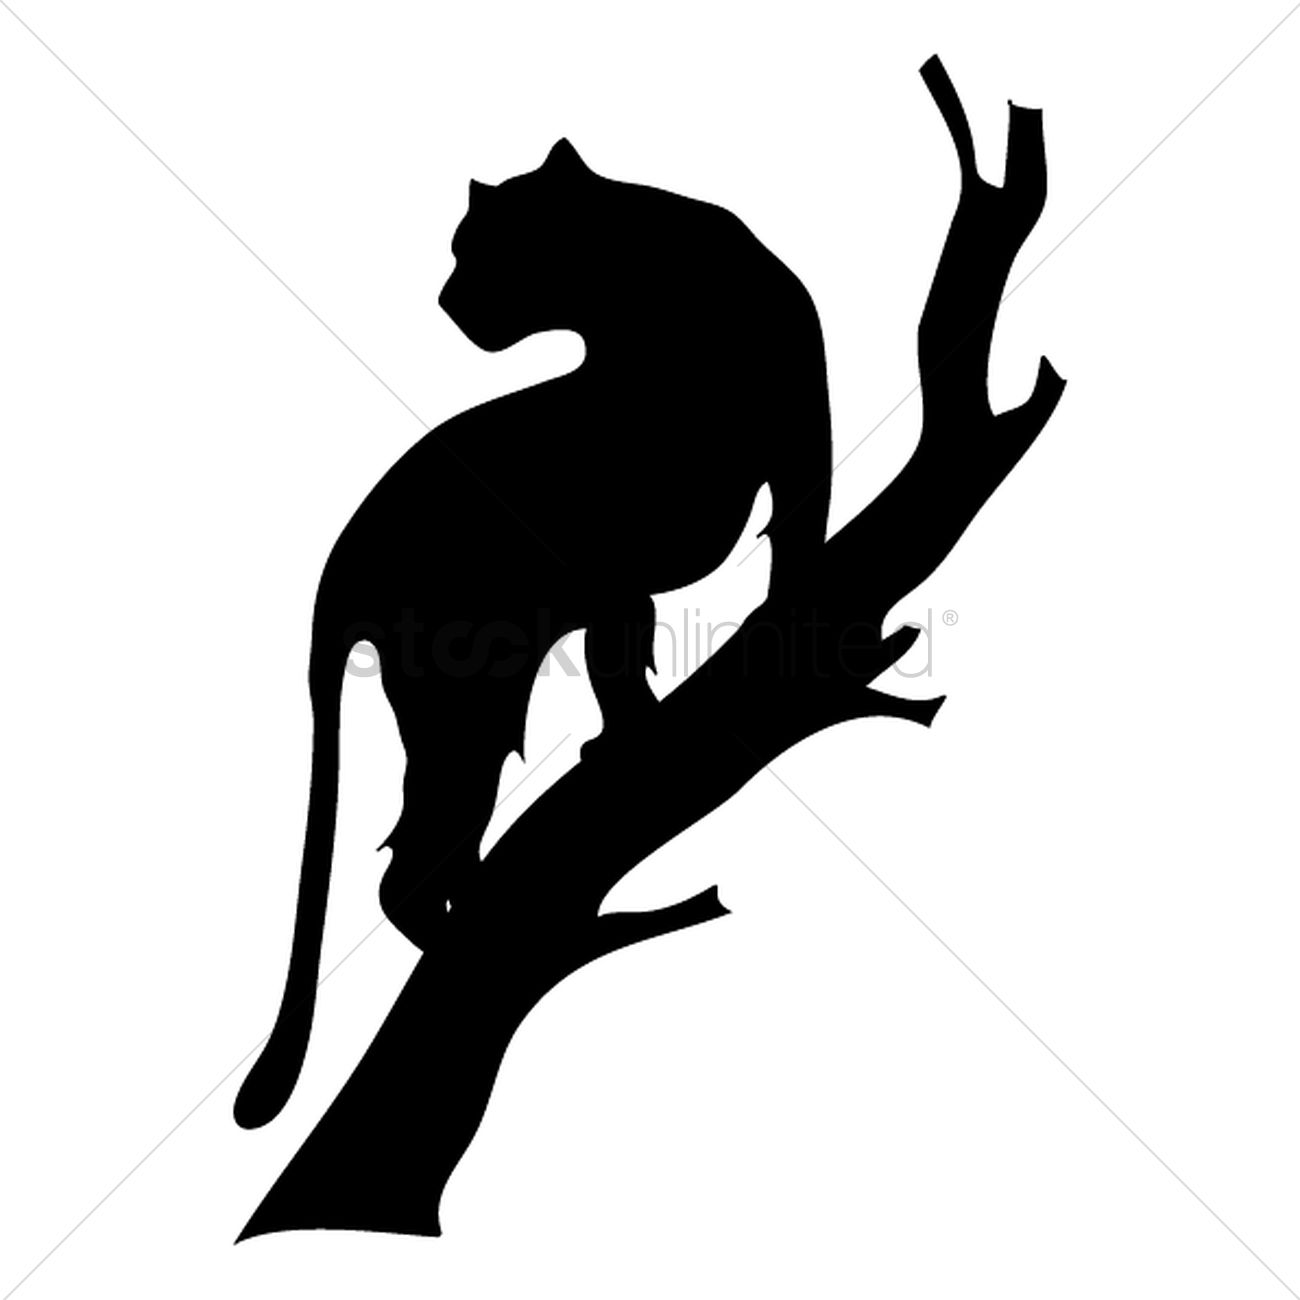 Silhouette Of Tiger On Tree Vector Image 1501679 Stockunlimited Silhouette tiger free brushes licensed under creative commons, open source, and more! silhouette of tiger on tree vector